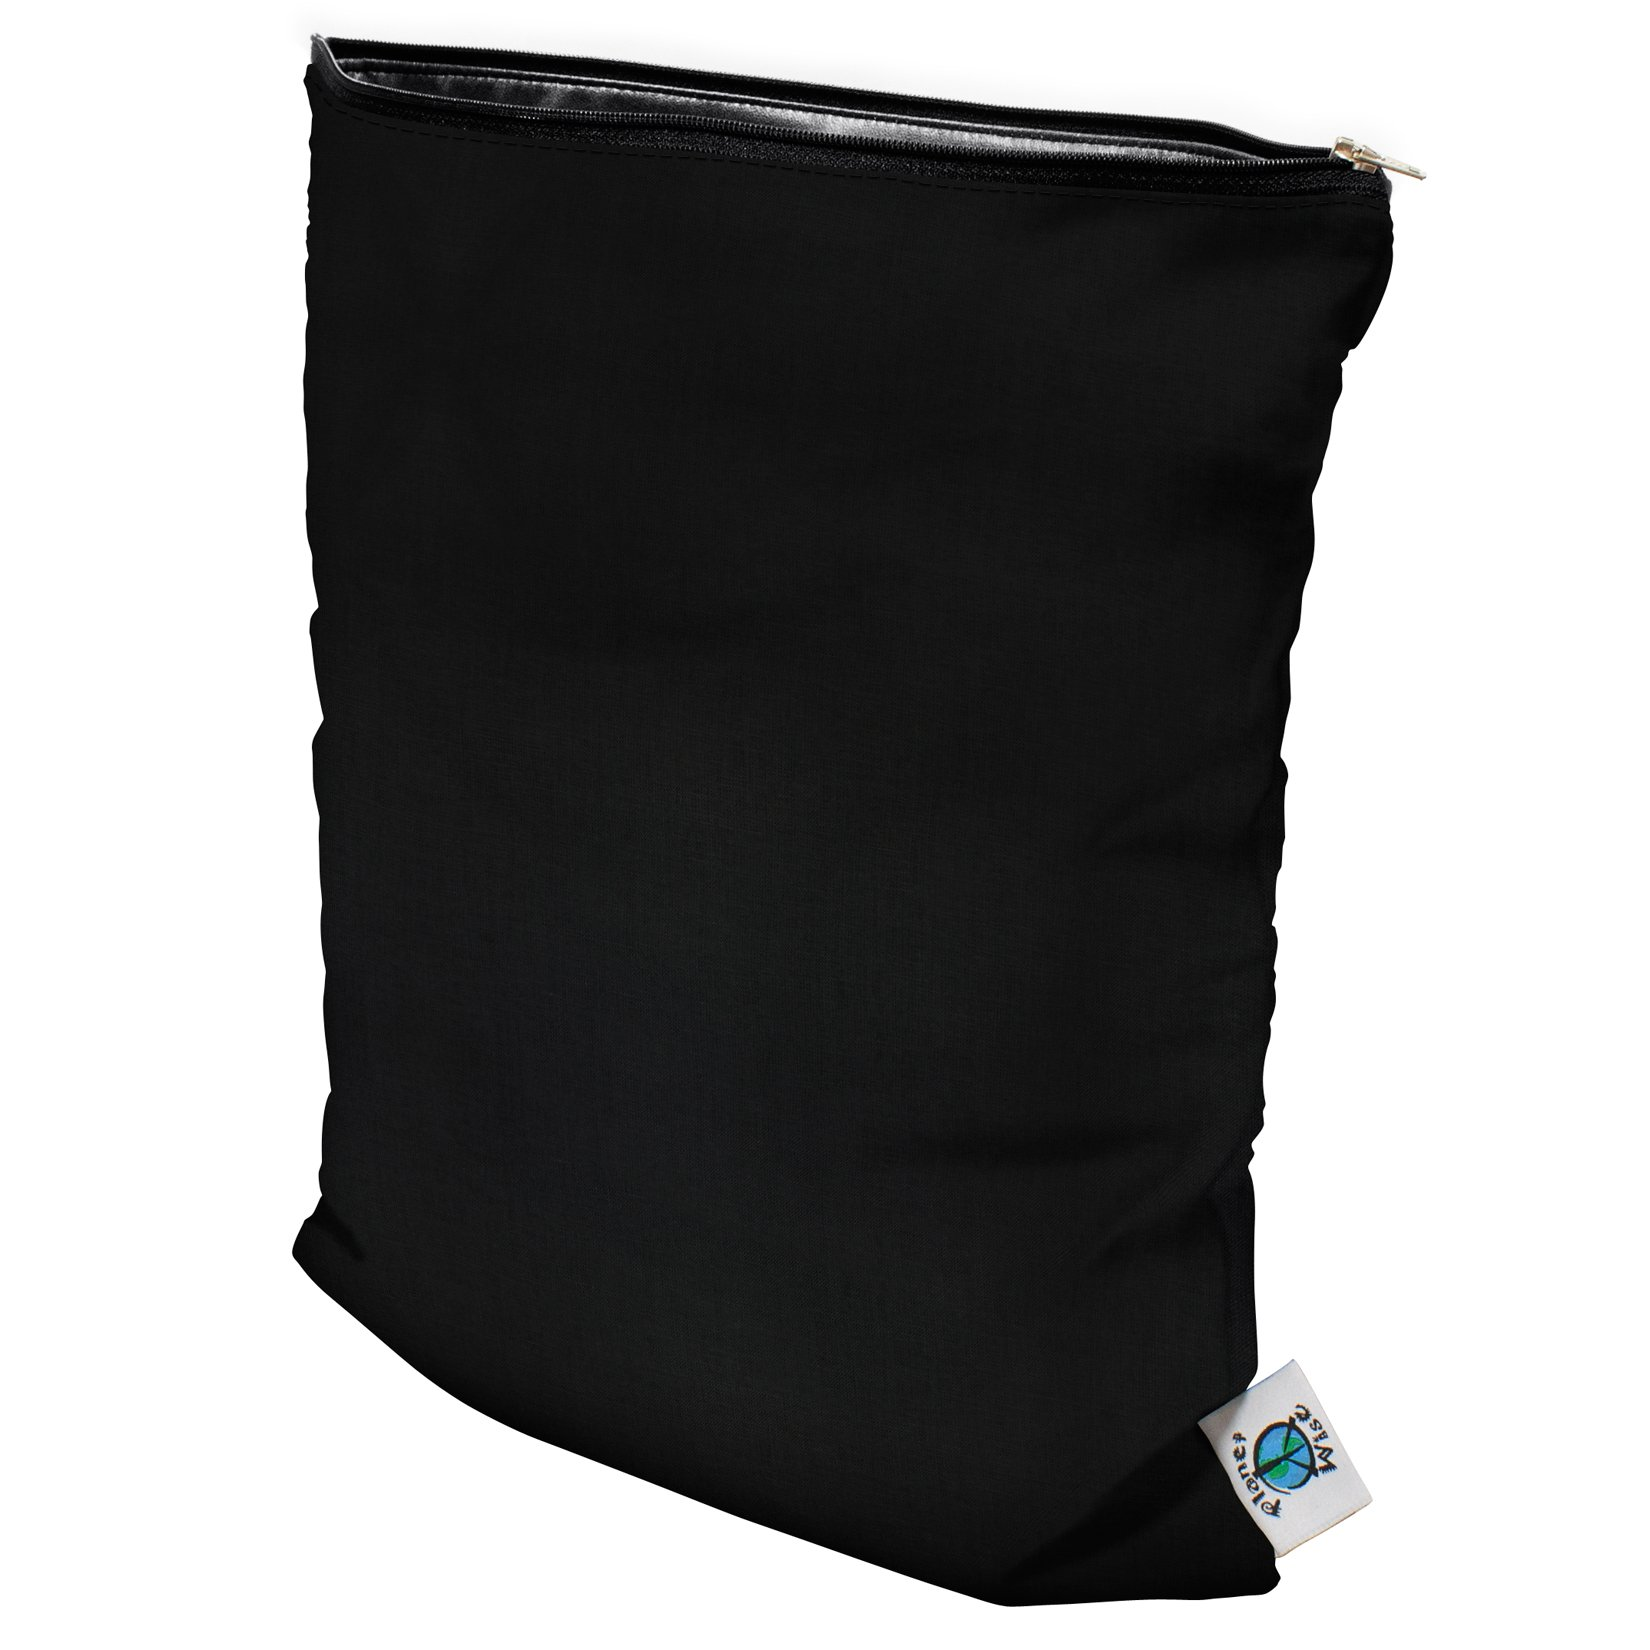 Planet Wise Wet Bag, Medium, Black (Made in The USA)